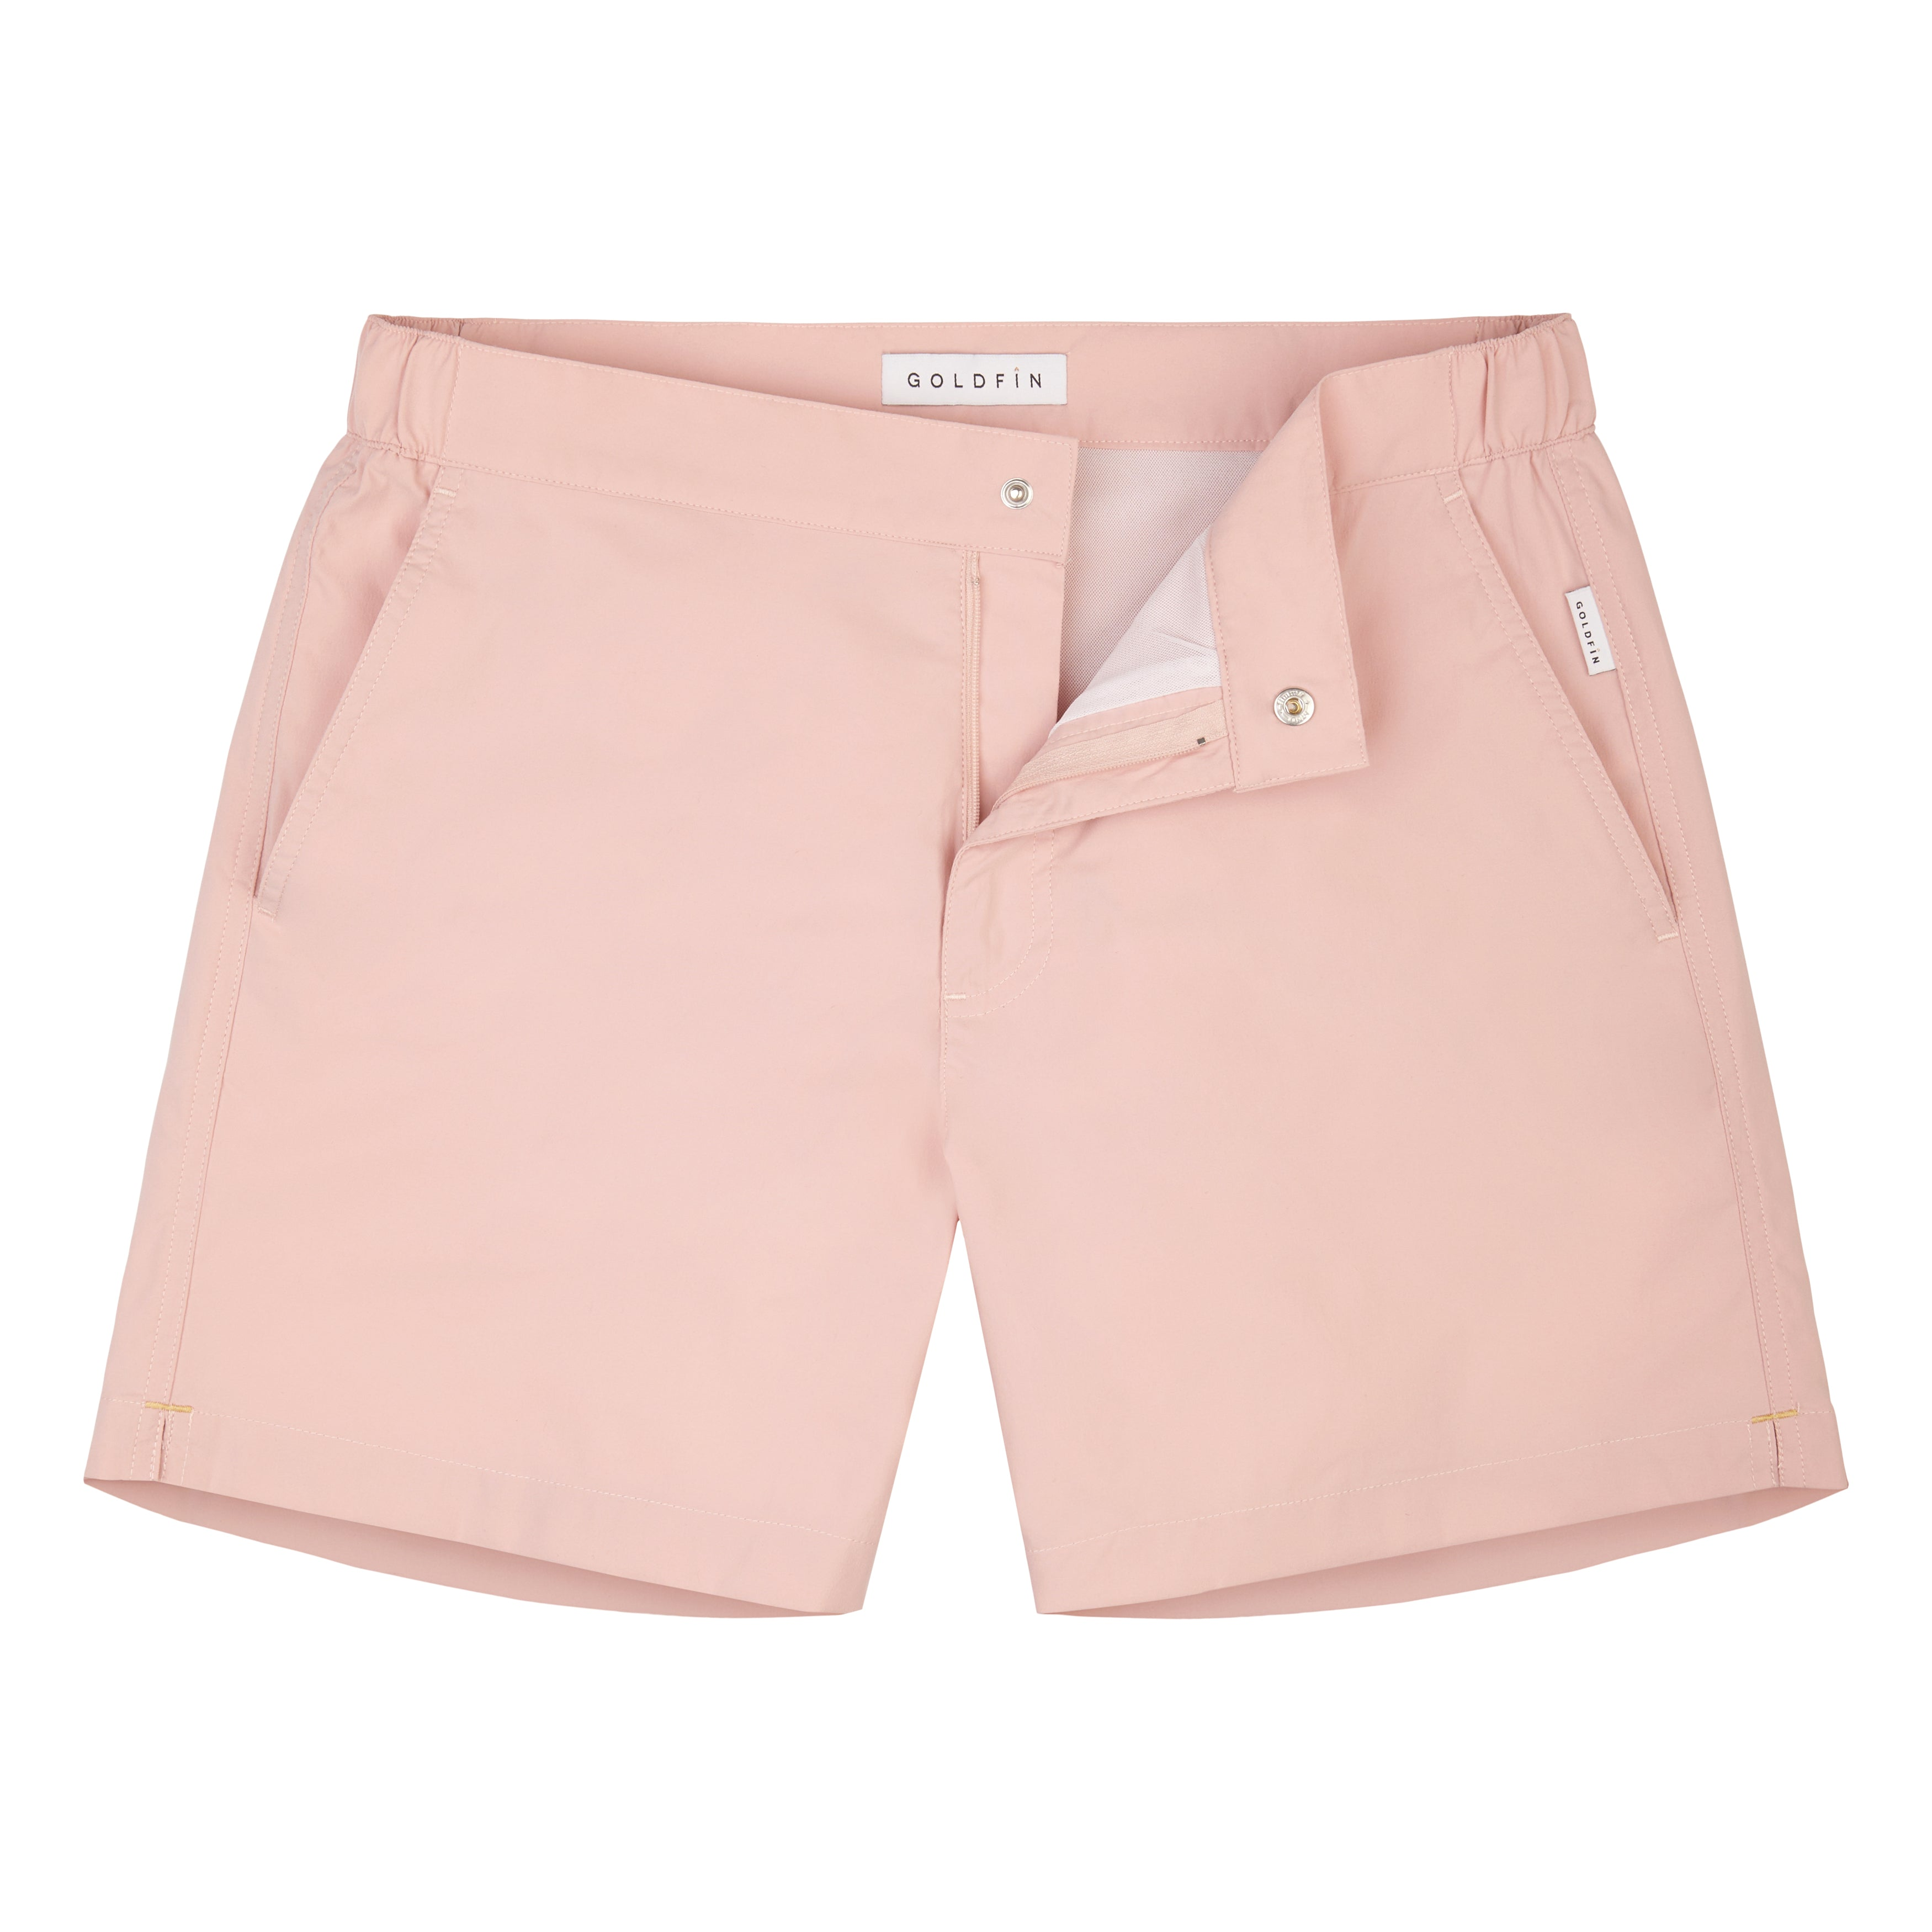 Pale Pink SwimGym Shorts - GOLDFIN Swim Shorts